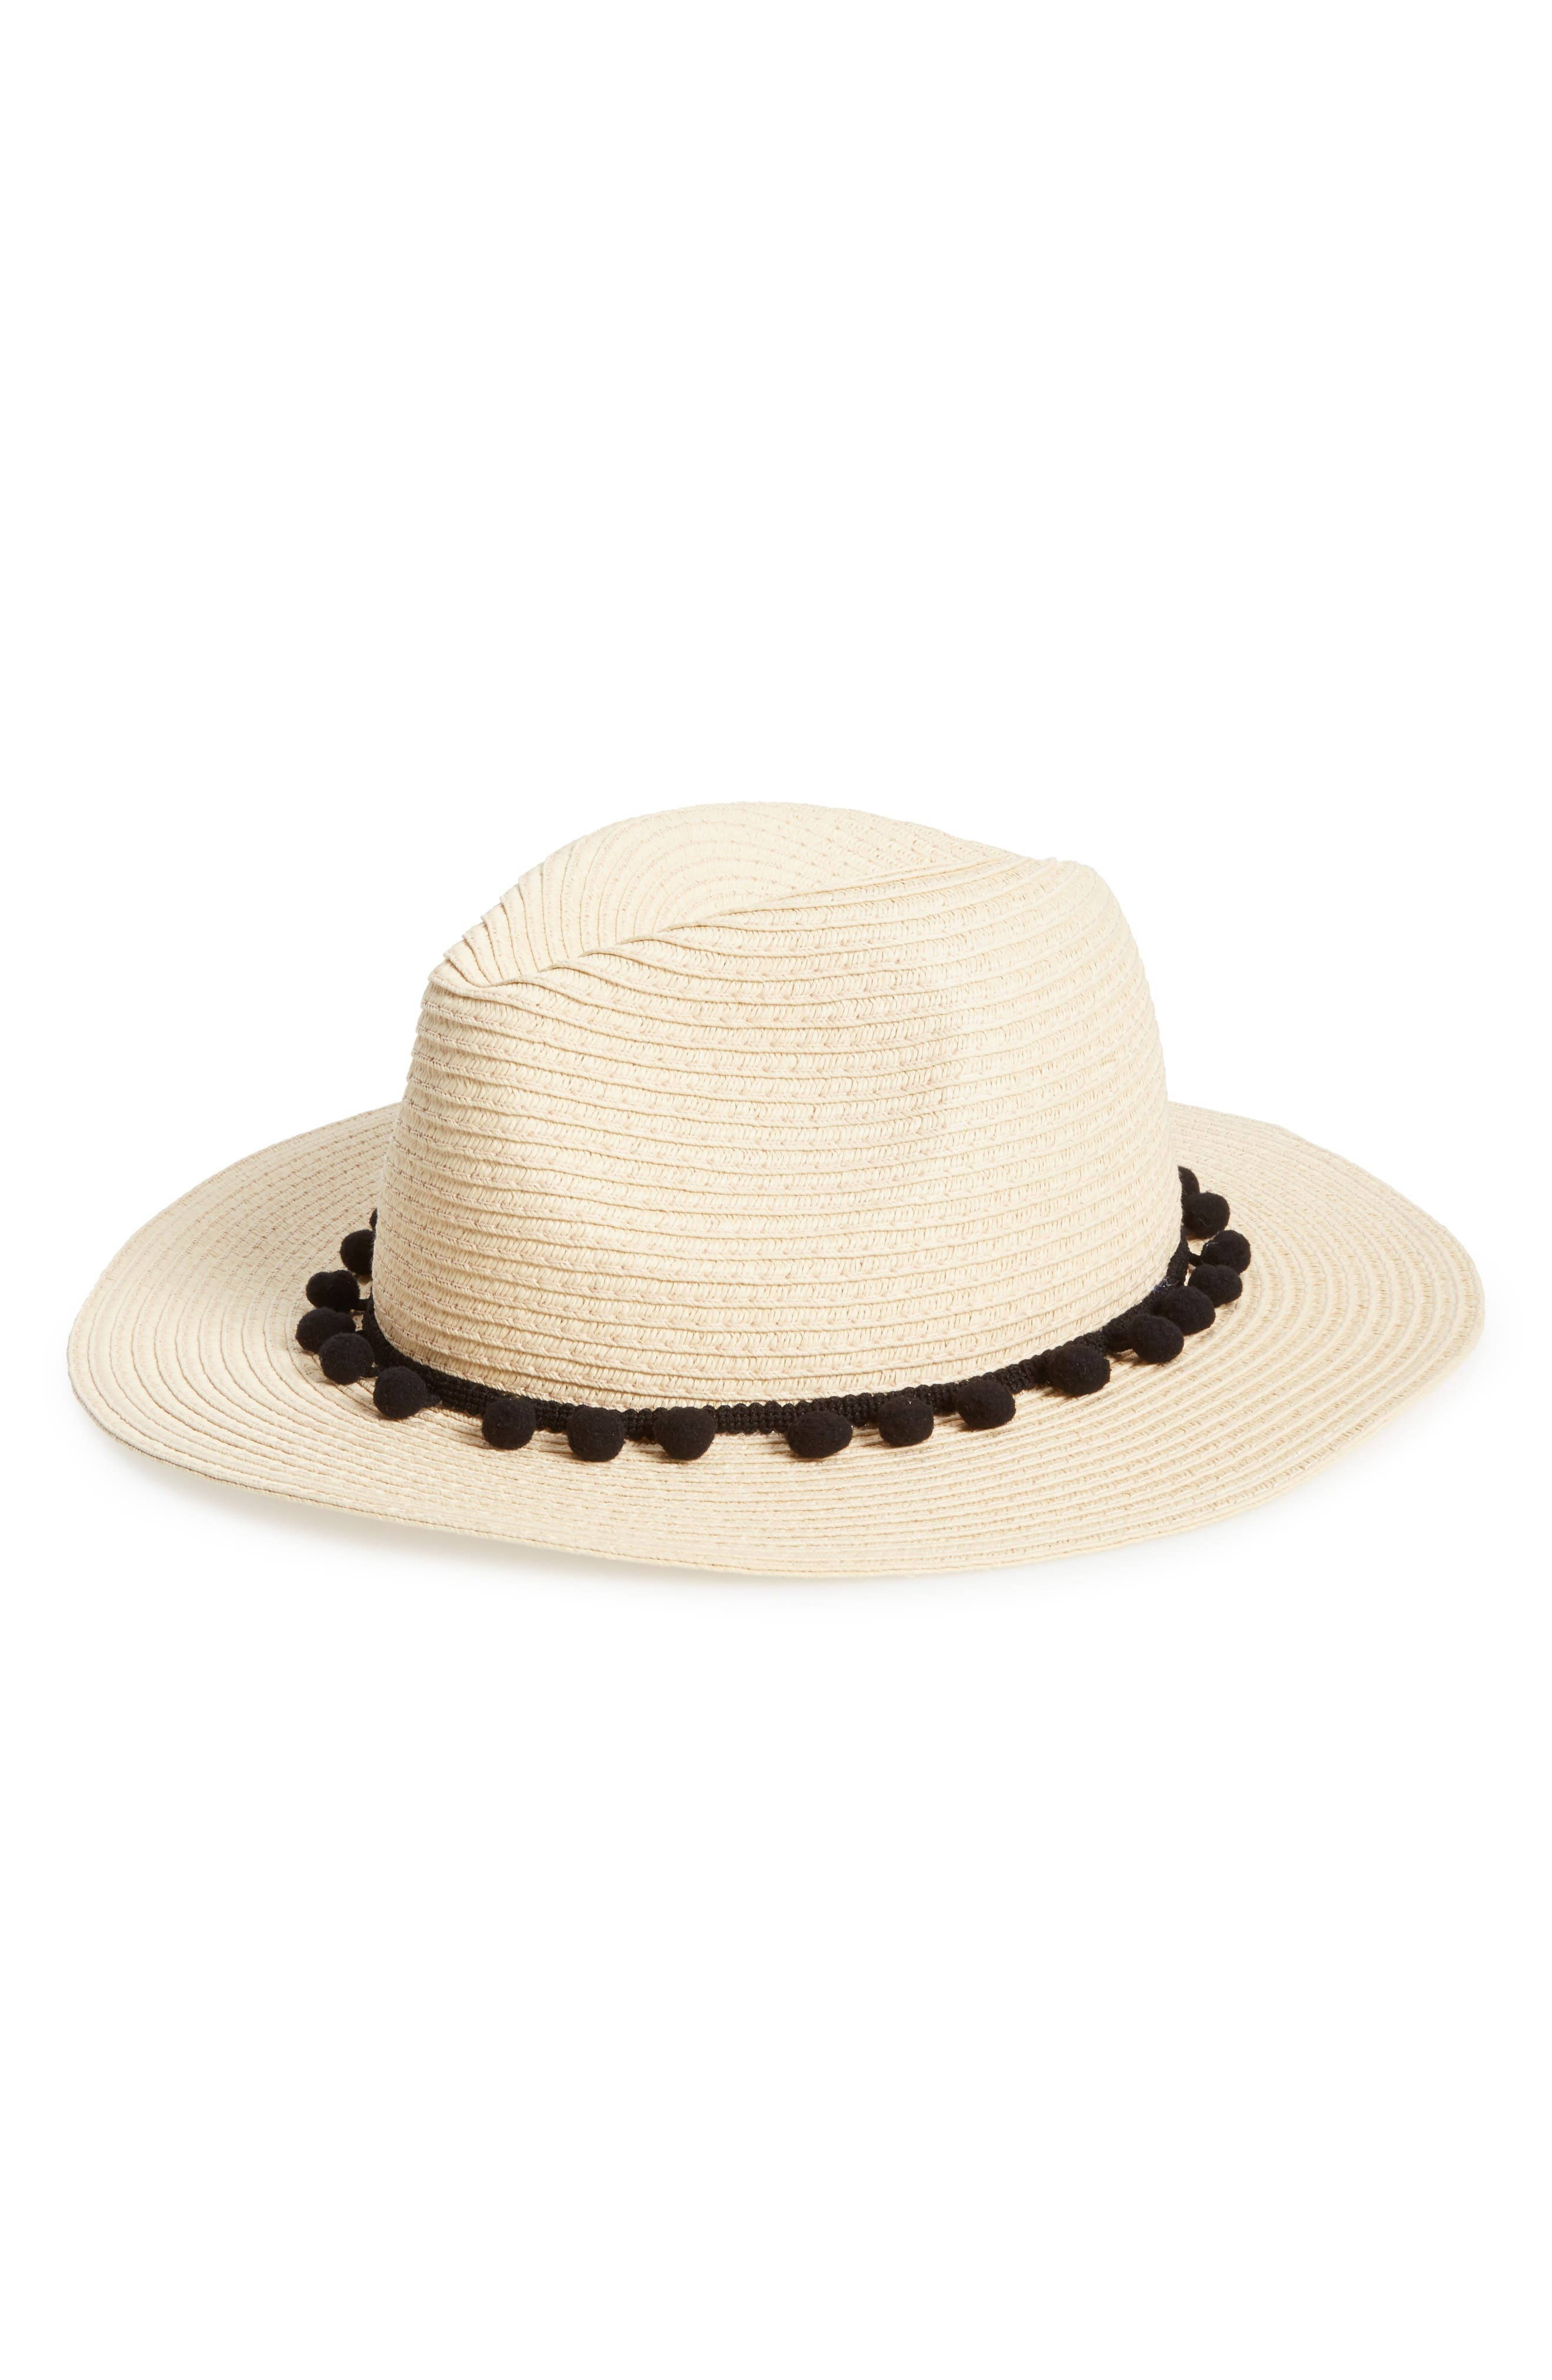 Main Image - Sole Society Pom Pom Panama Hat